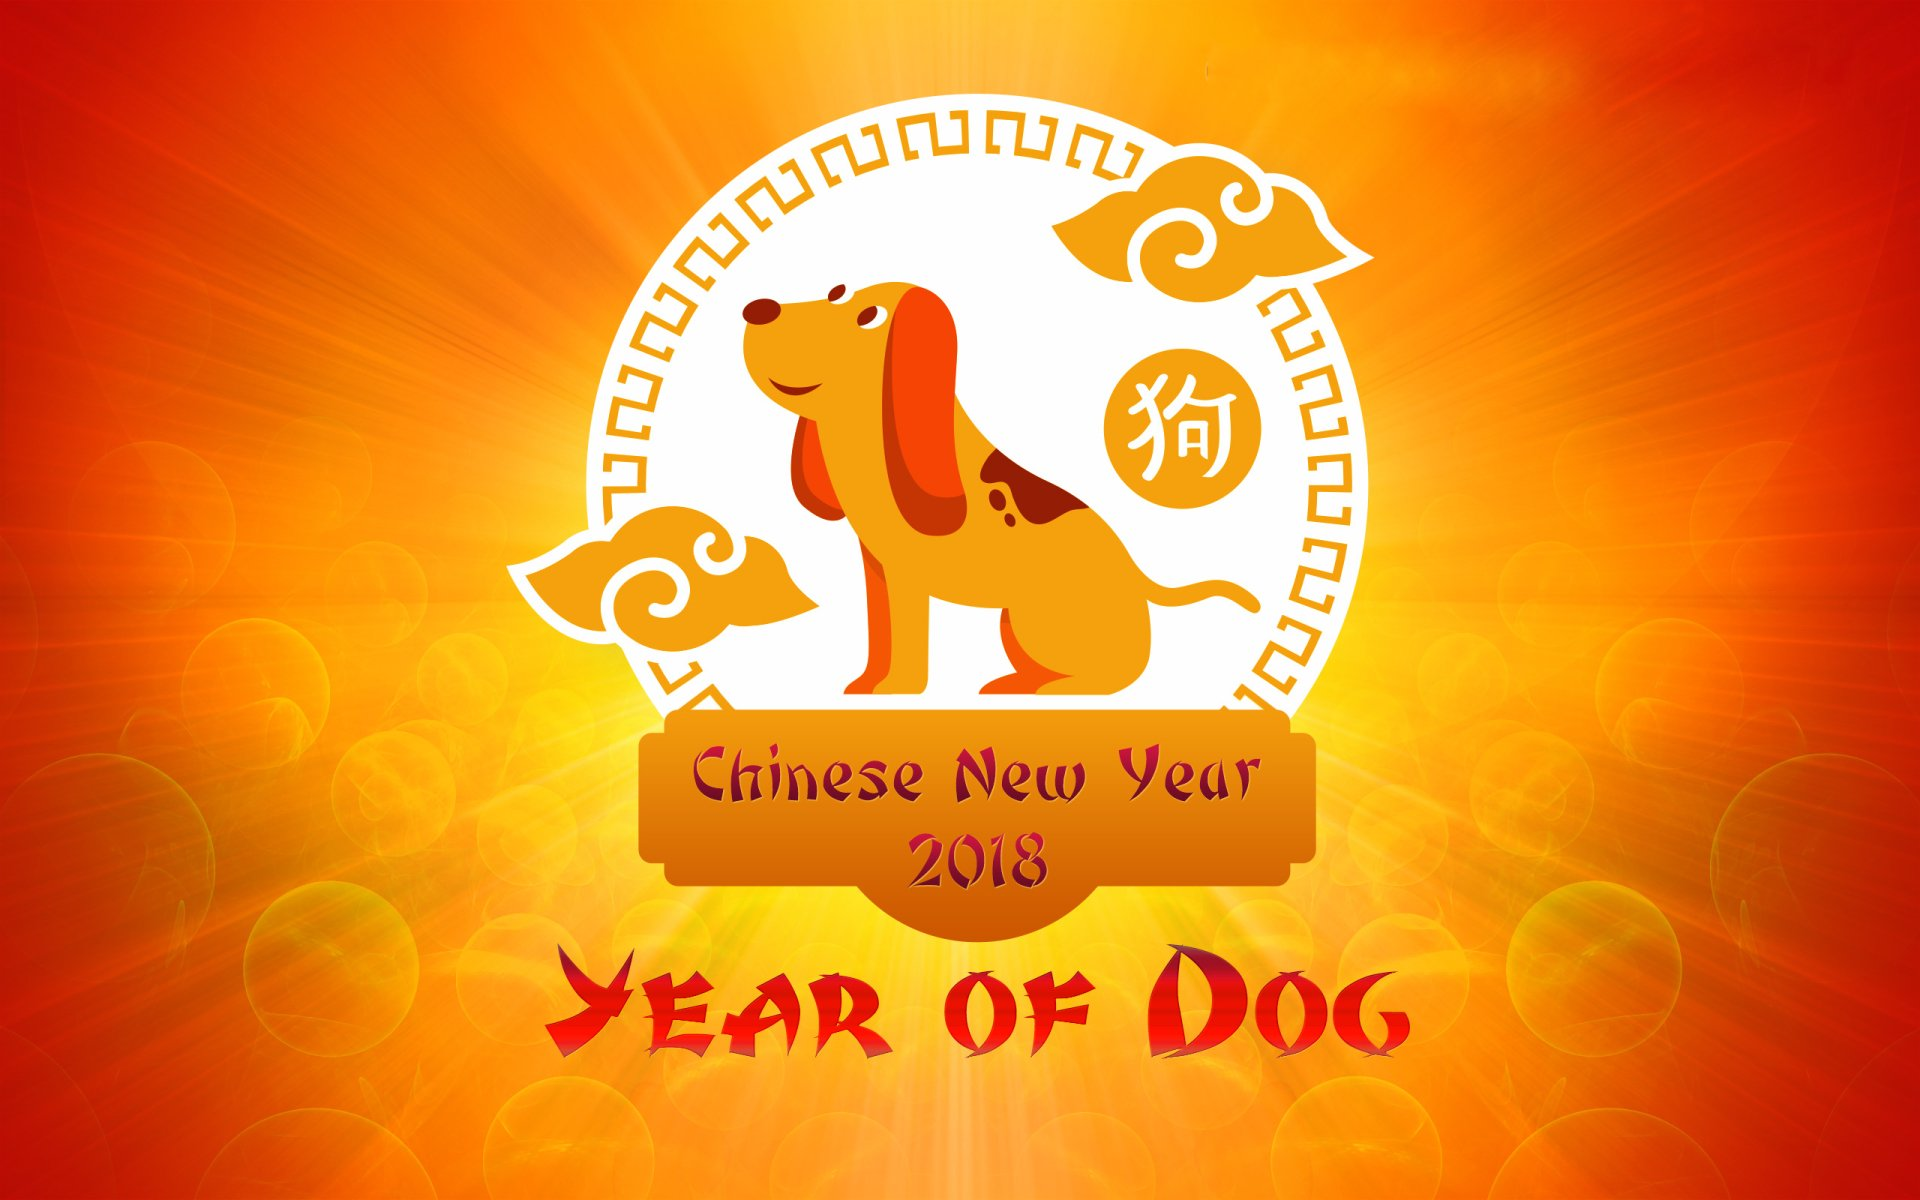 Holiday - Chinese New Year  New Year Dog Wallpaper